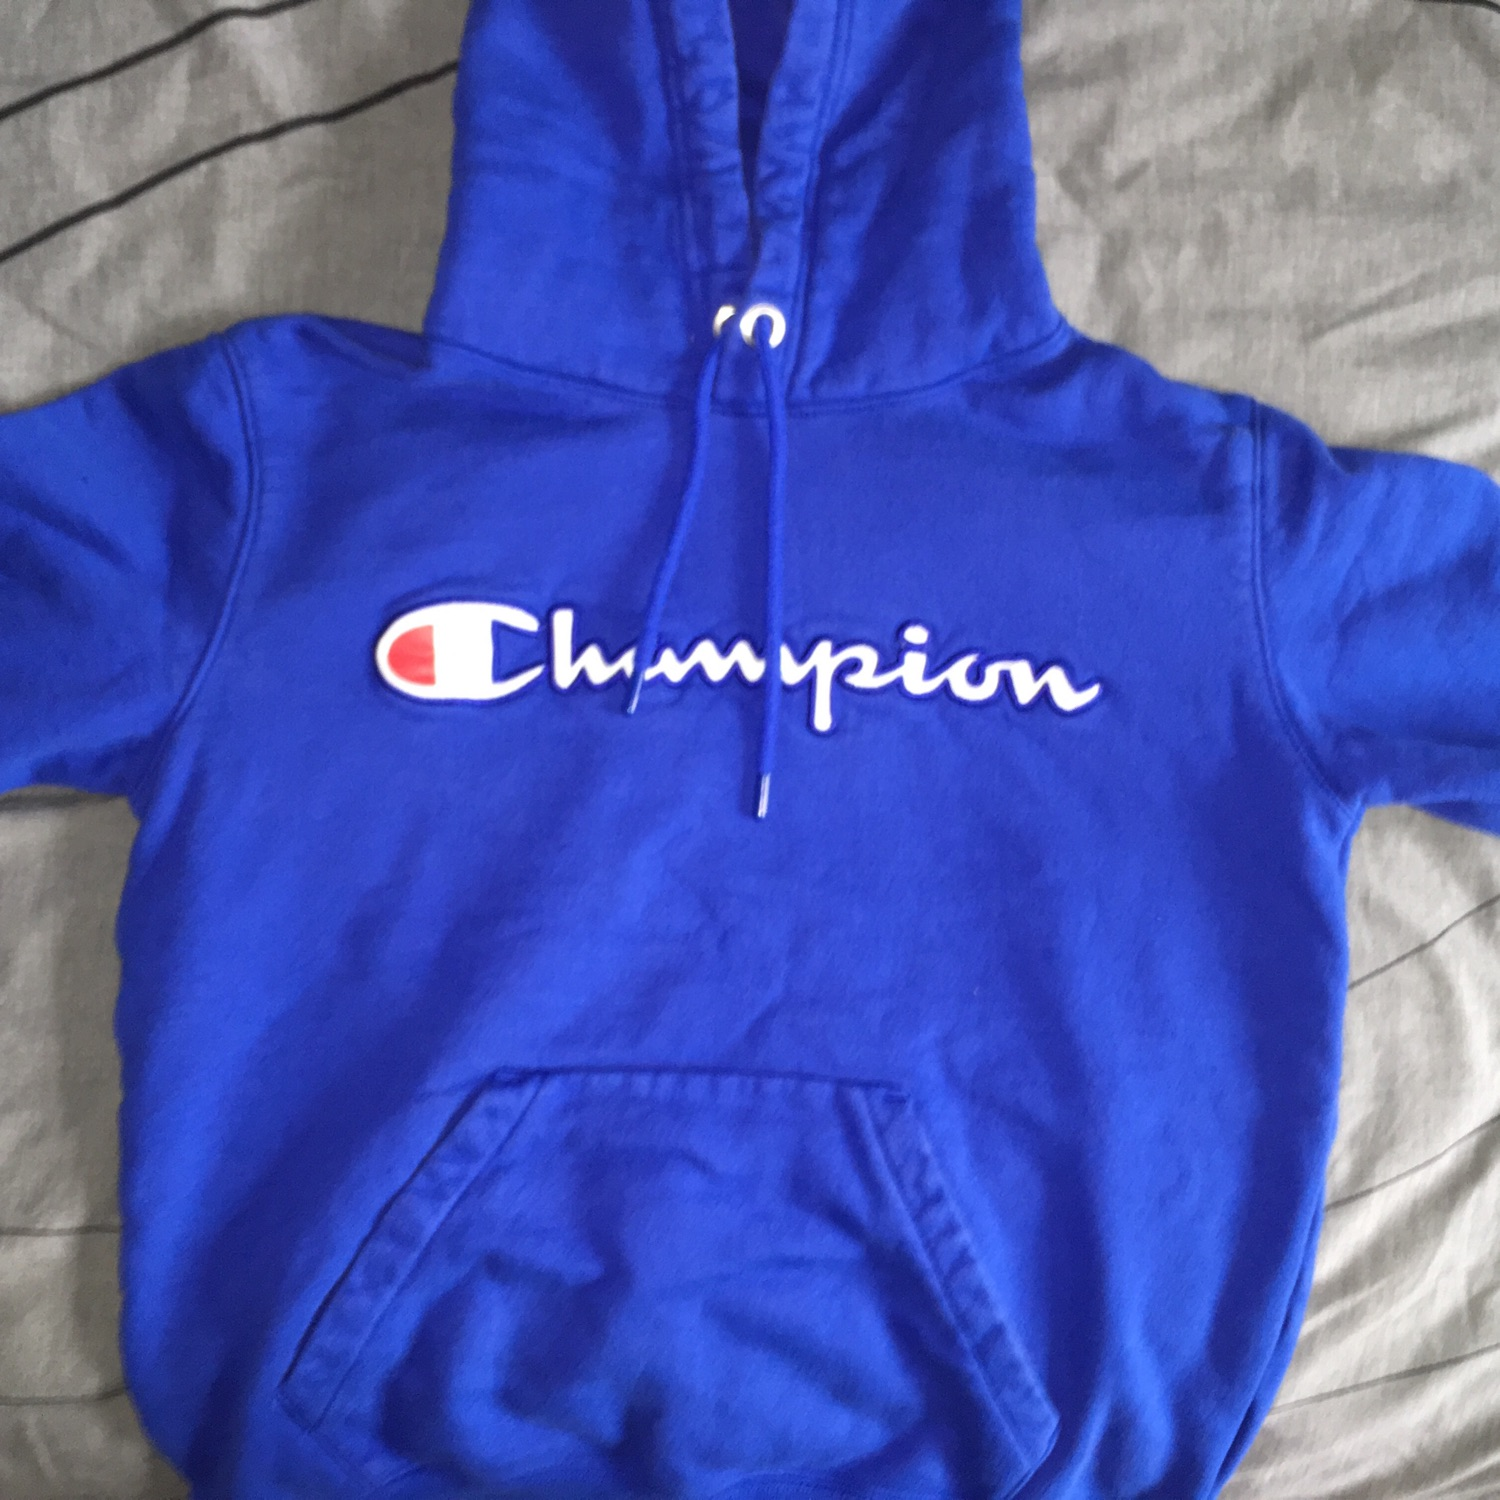 Smallblue Champion Size Hoodie Smallblue Hoodie Size Champion wmnO8vN0